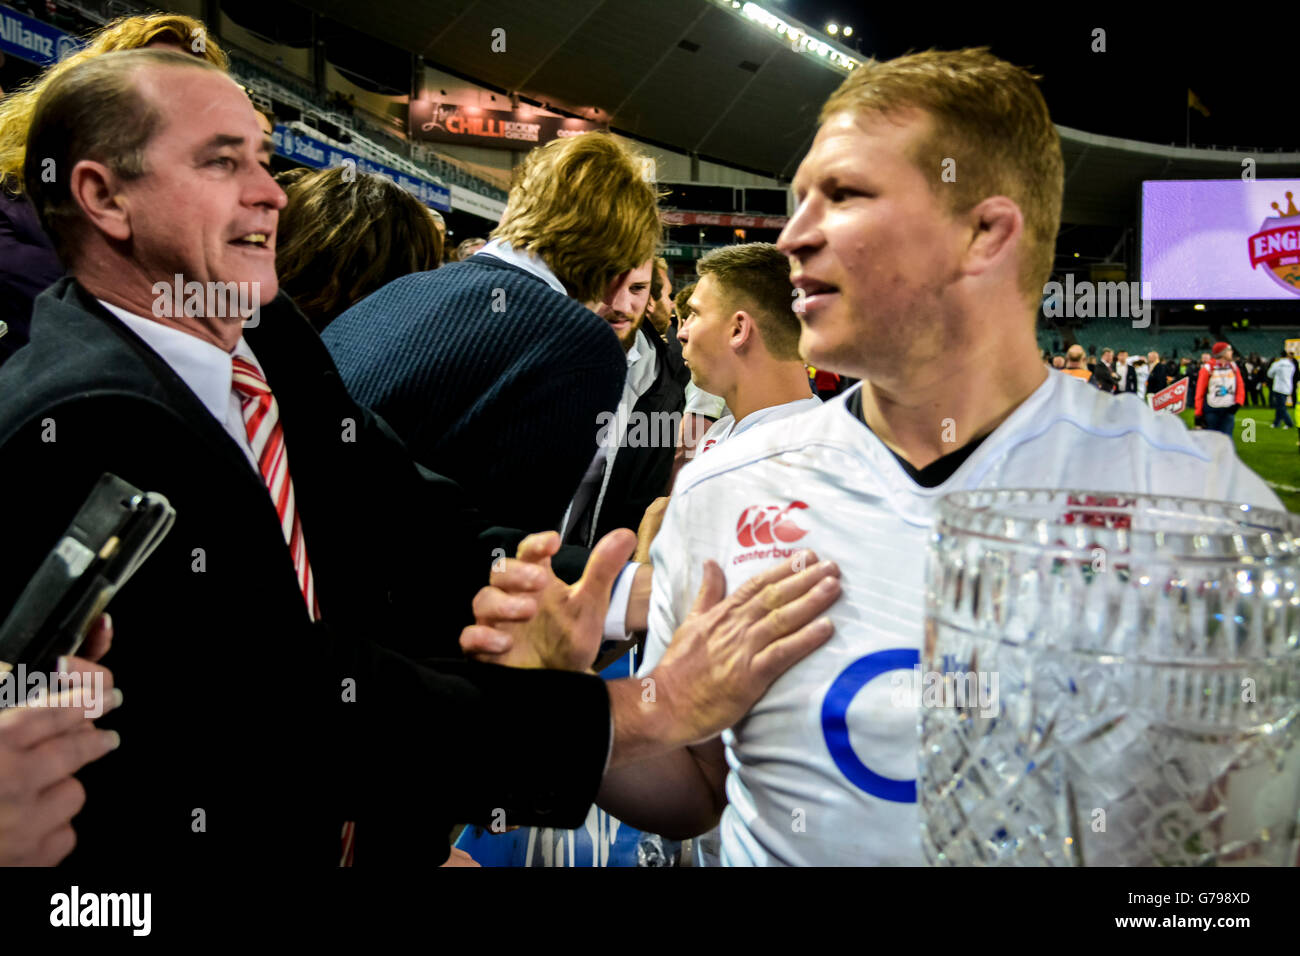 Sydney, Australia. 25 June, 2016. England rugby captain Dylan Hartley and his tearful father with the Cook Cup trophy - Stock Image